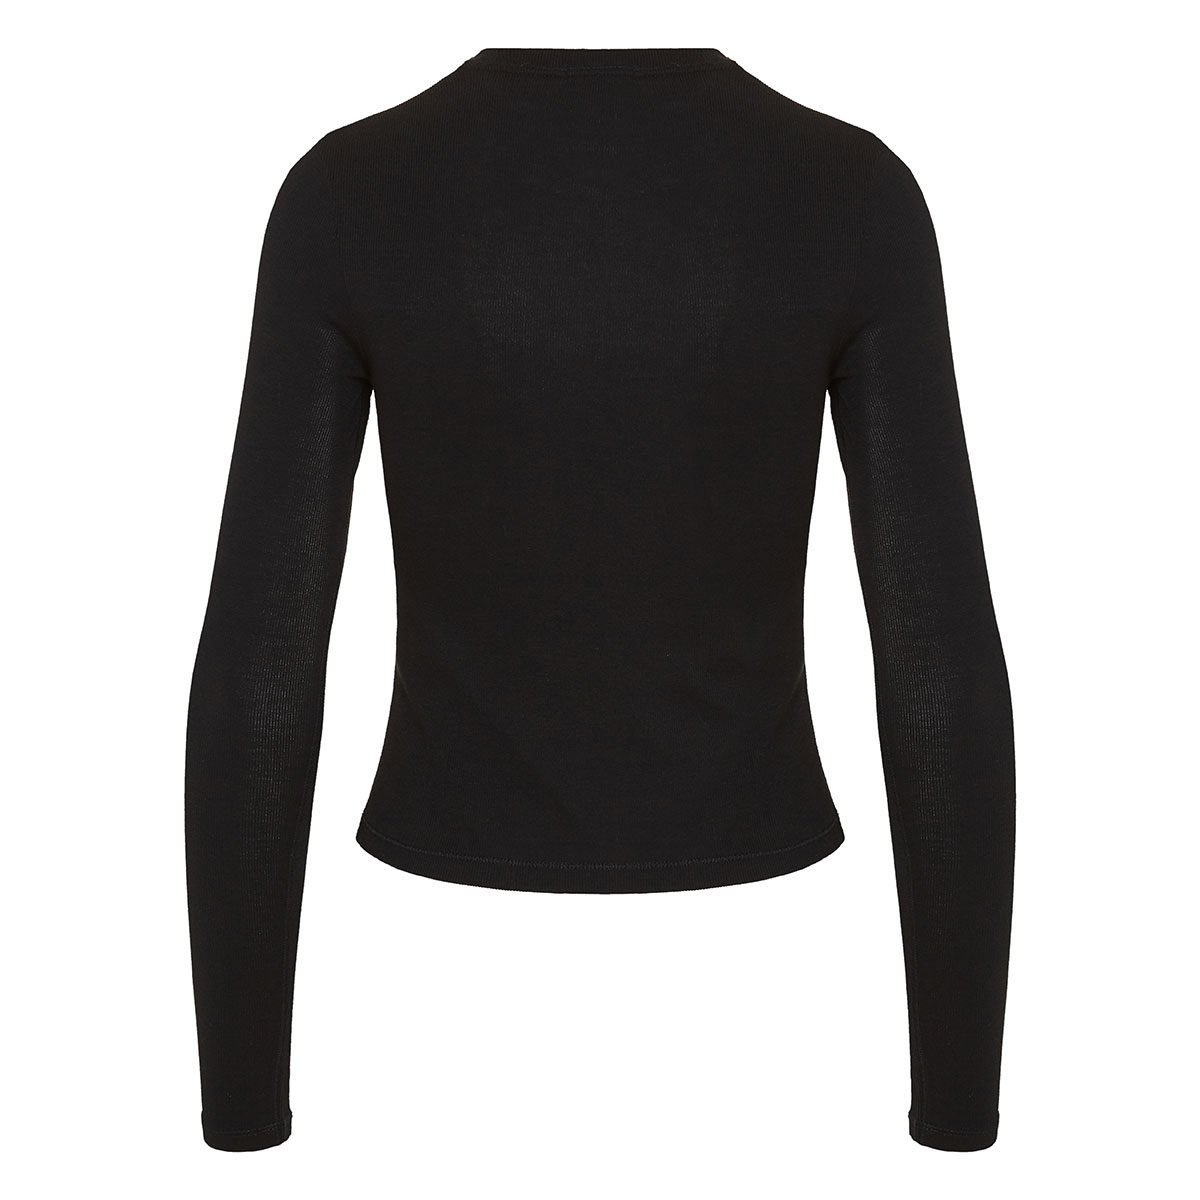 The Rib cropped blouse